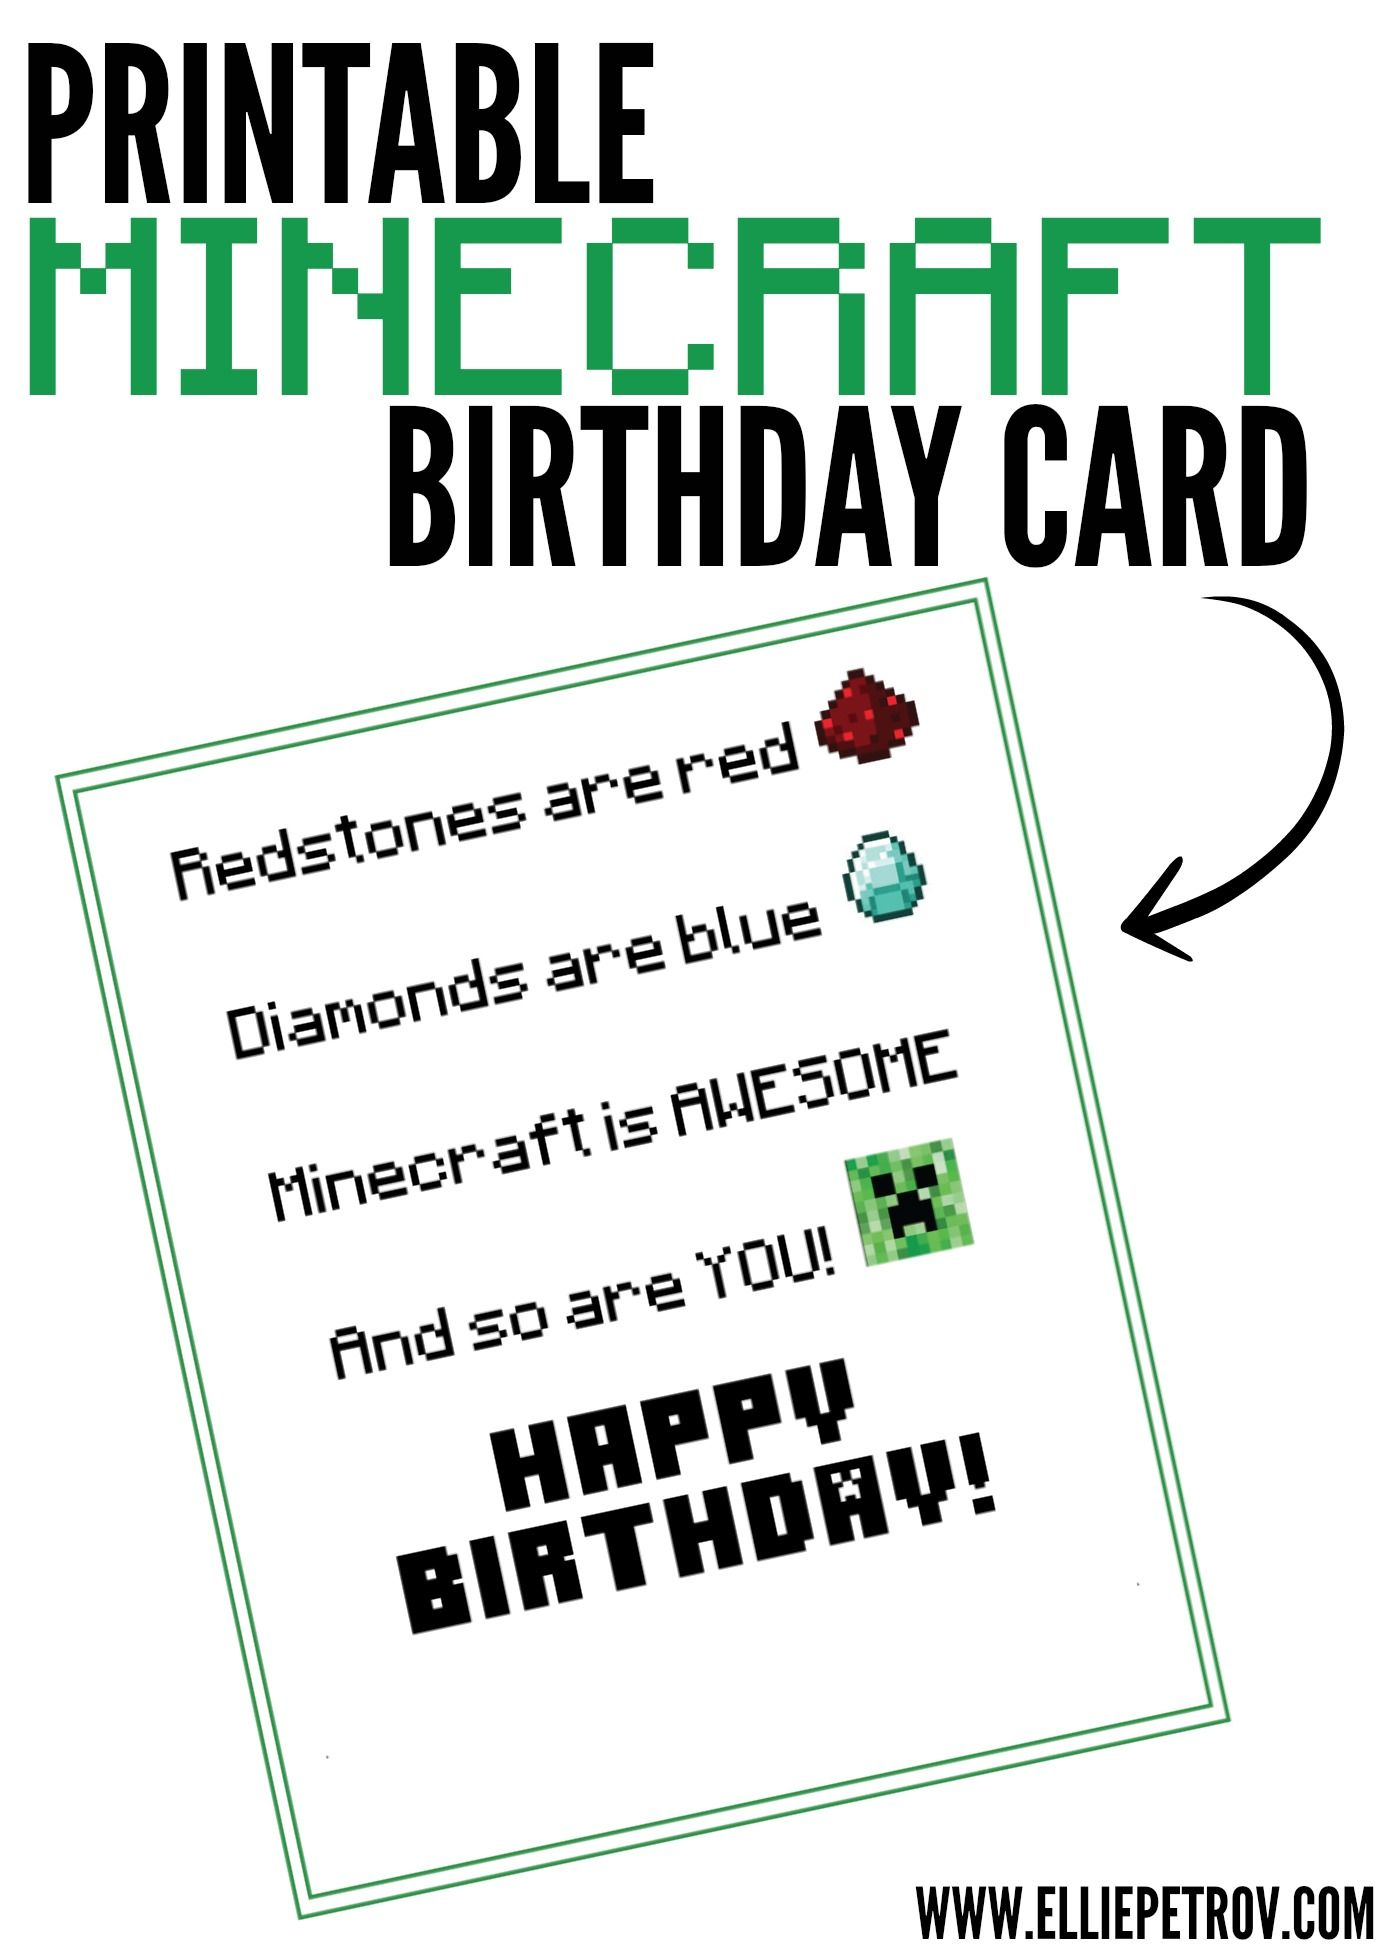 Account Suspended Minecraft Birthday Card Birthday Cards For Boys Birthday Card Printable